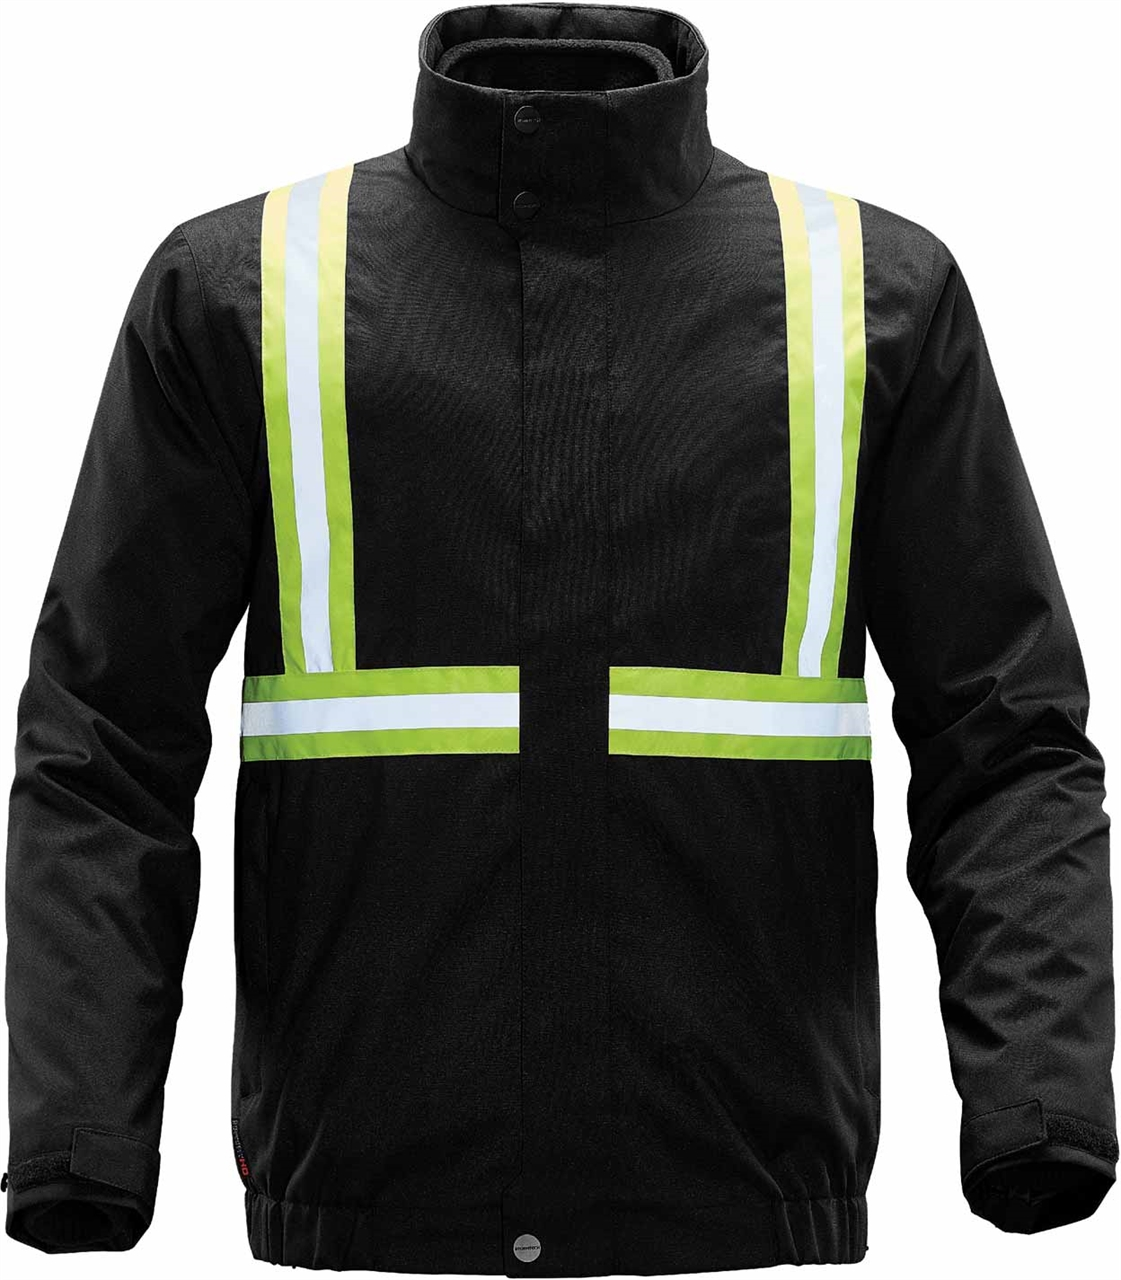 Picture of STORMTECH Unisex HD 3-in-1 Reflective Jacket